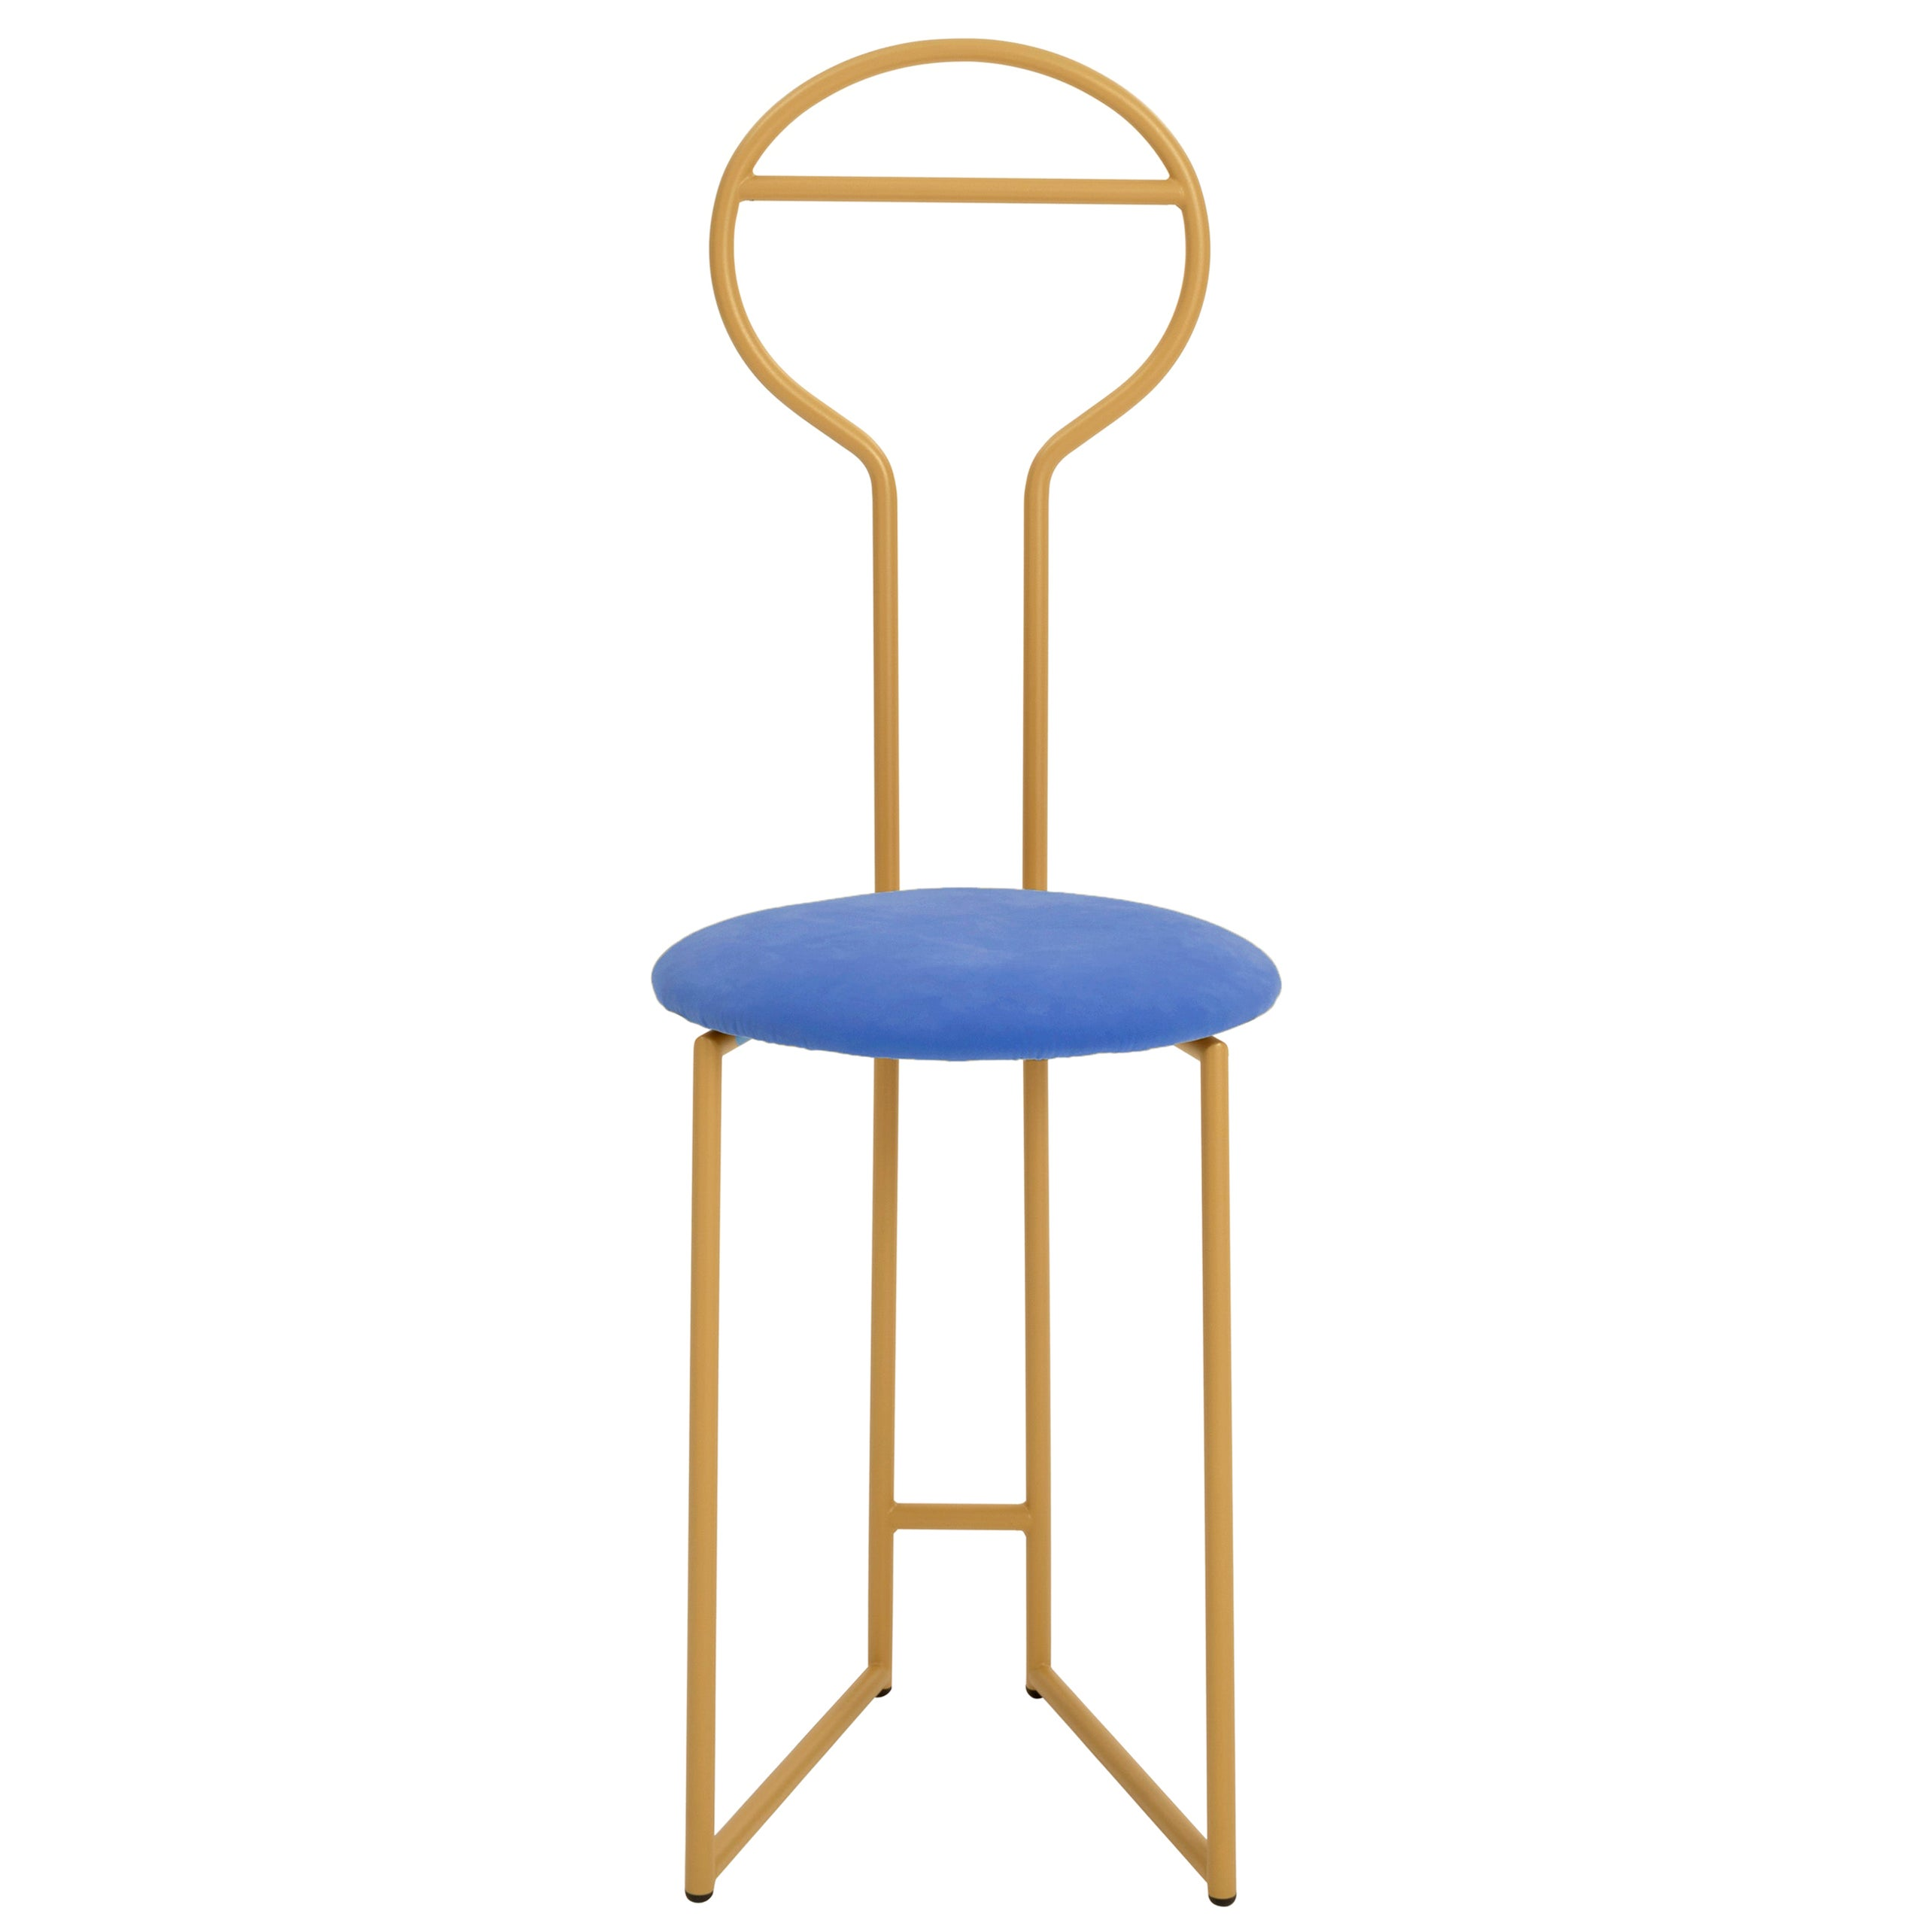 Joly Chairdrobe, High Back, Gold Steel Structure and Electric Blue Fine Velvet